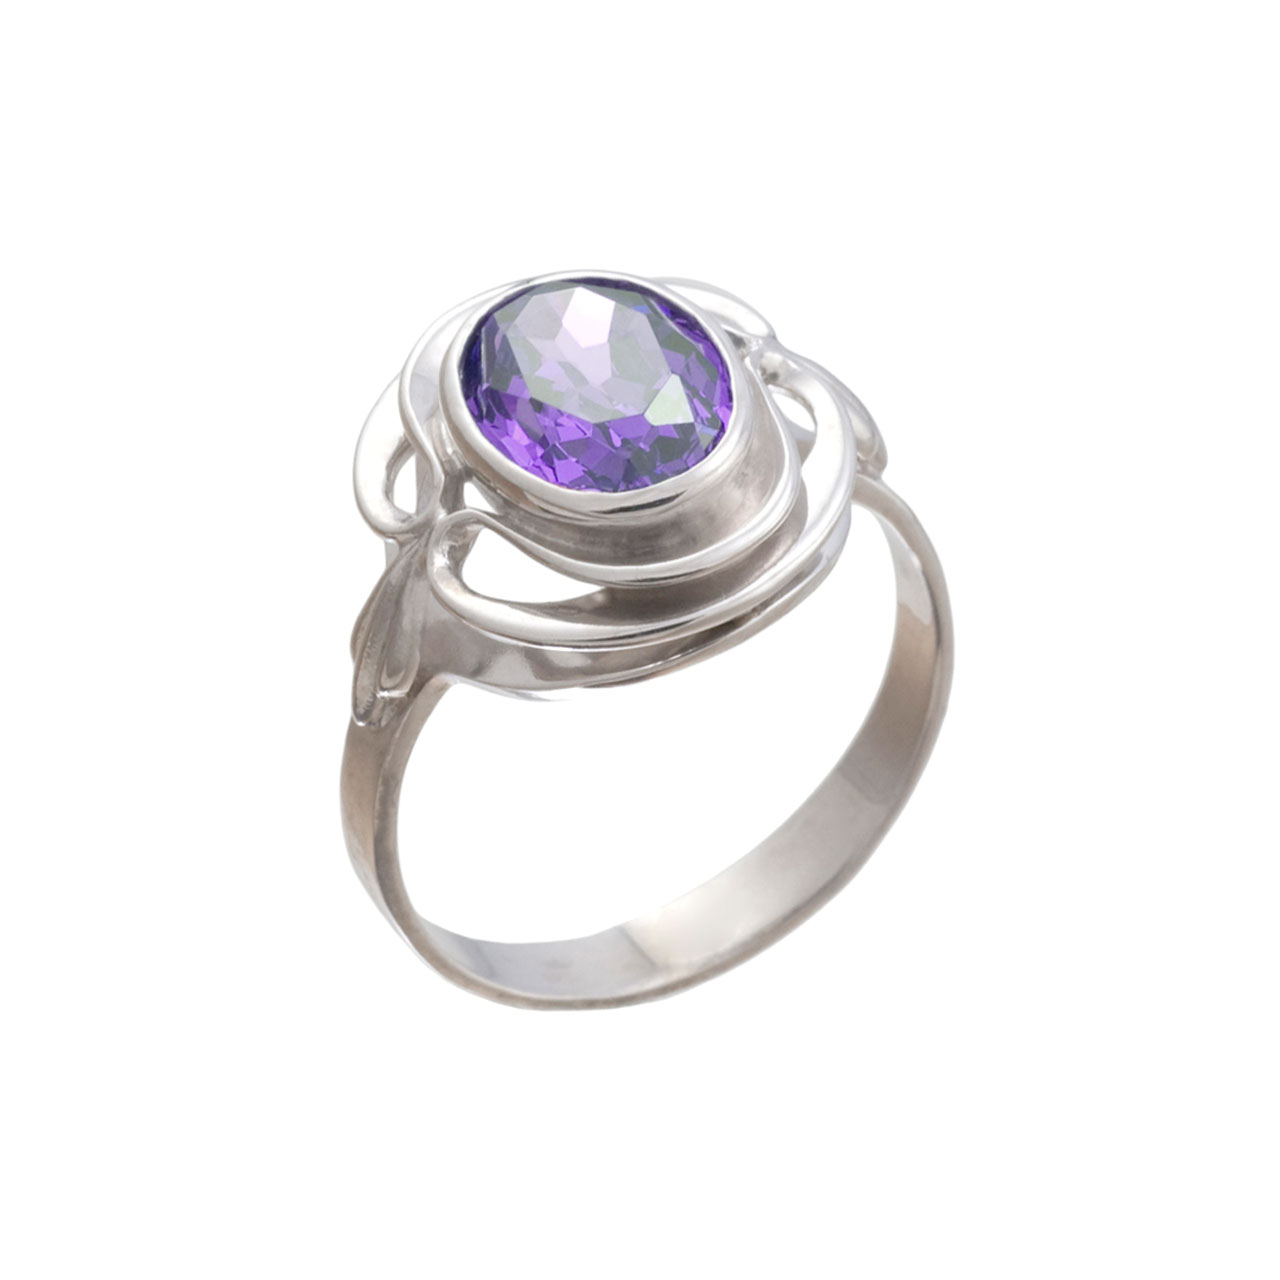 Silver Ring With Genuine Amethyst